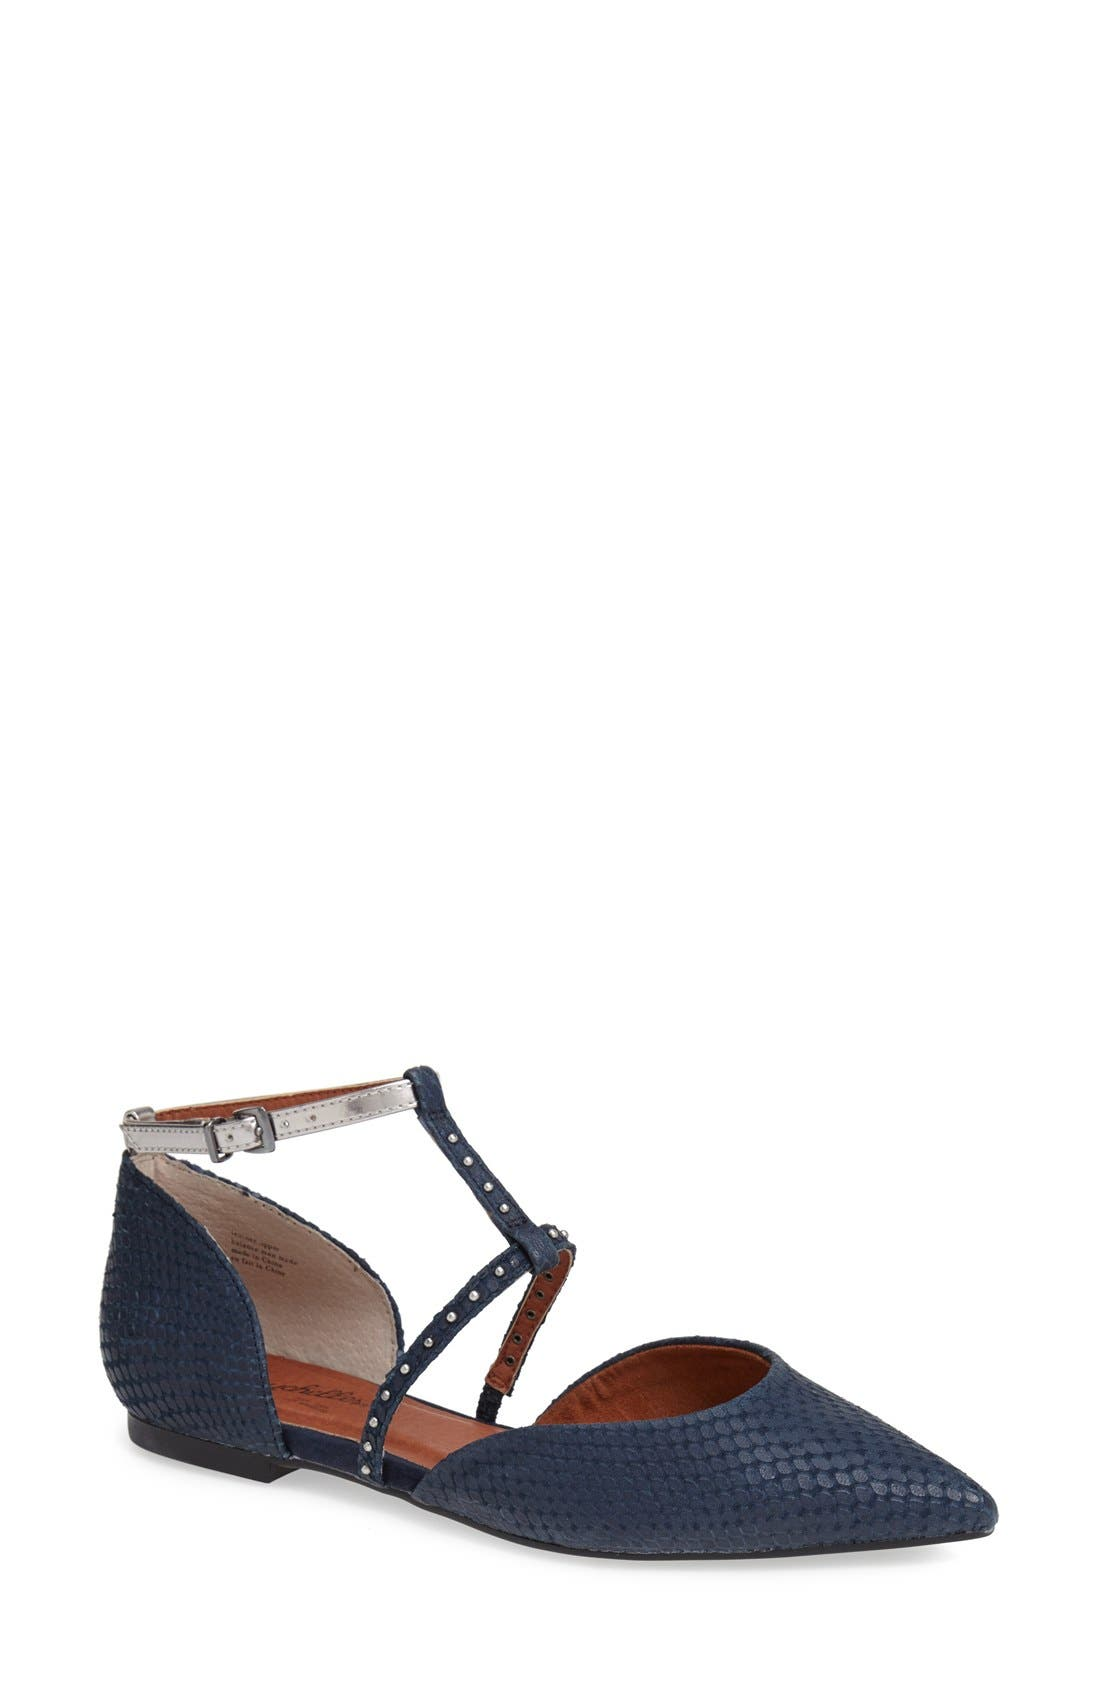 Alternate Image 1 Selected - Seychelles 'Uncovered' Leather Ankle Strap Flat (Women)